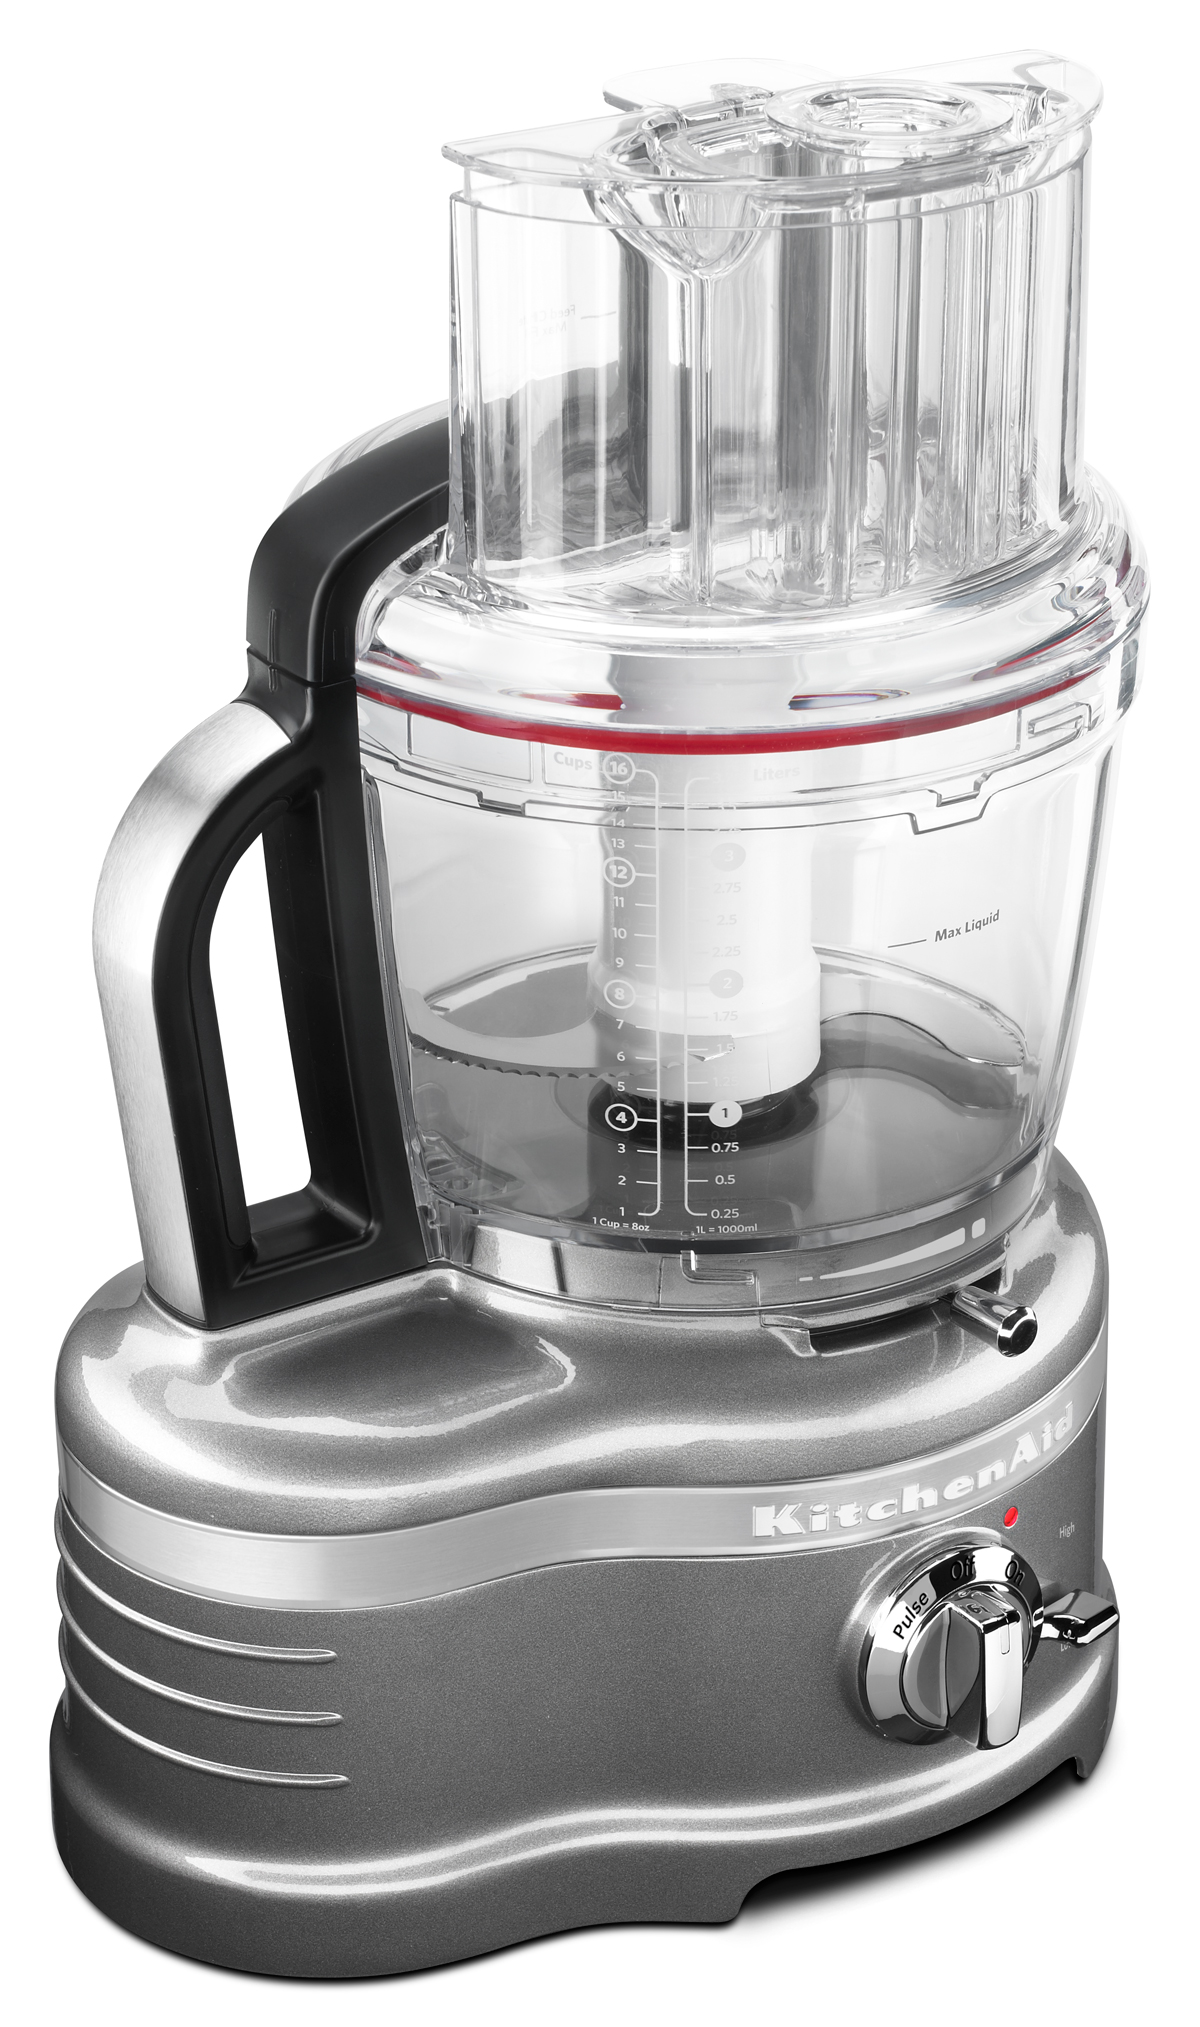 The KitchenAid Pro Line 16-Cup Food Processor slices and dices.